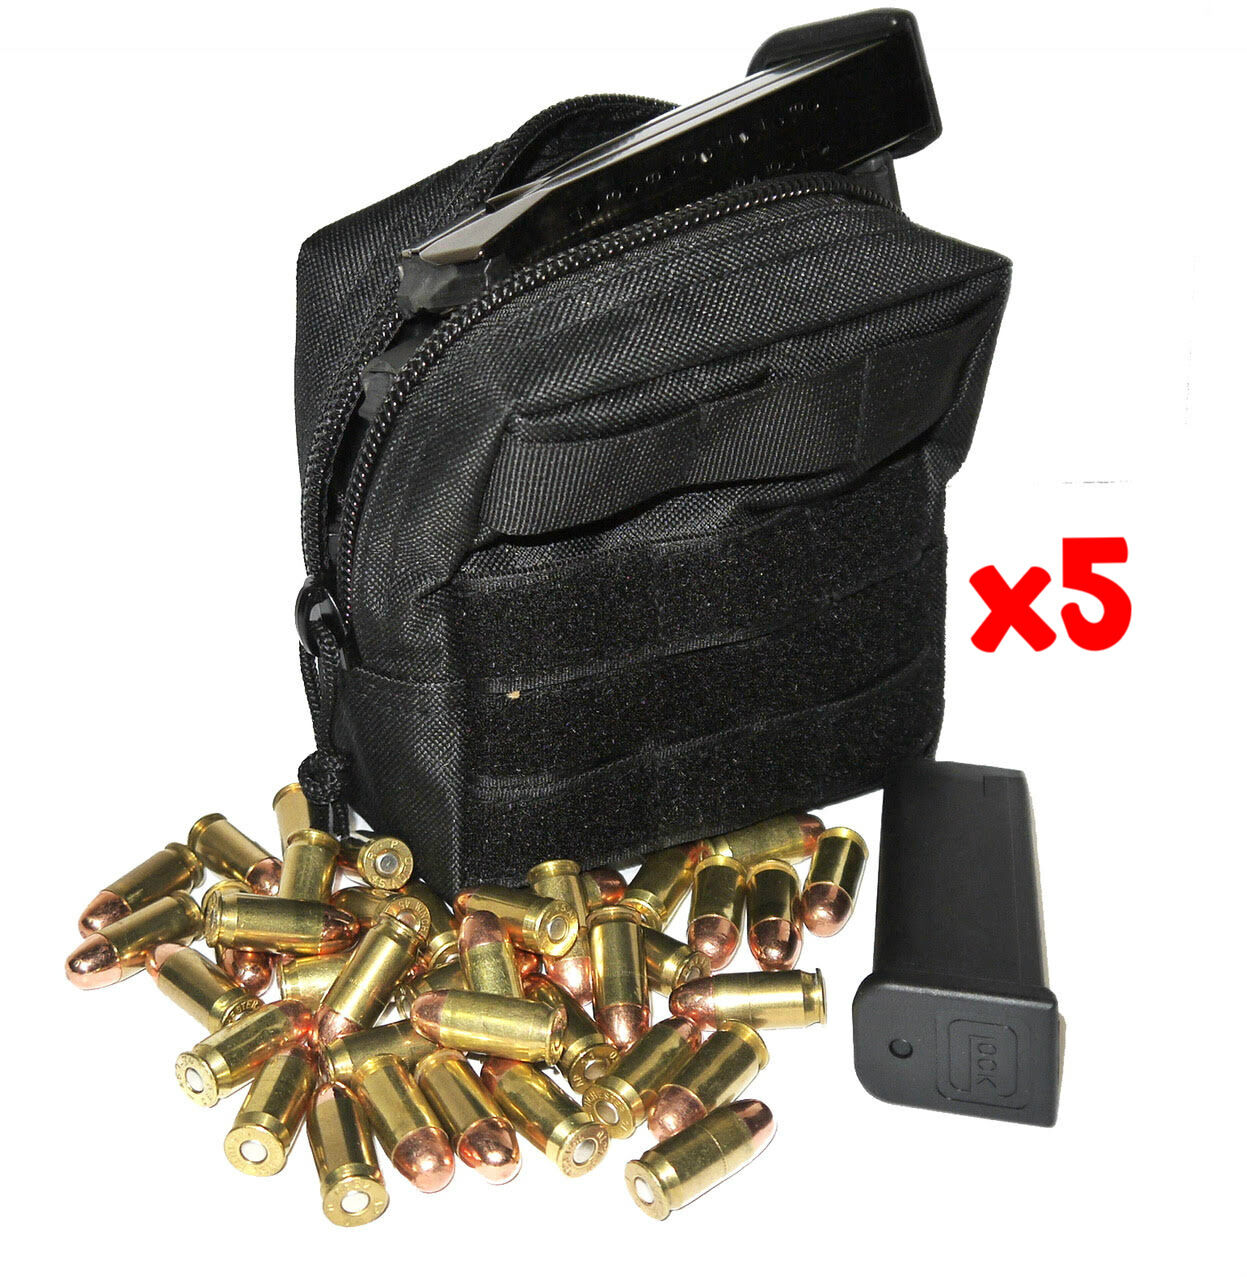 (5) .357 MAG AMMO MODULAR MOLLE UTILITY POUCH FRONT HOOK LOOP STRAP .357 357